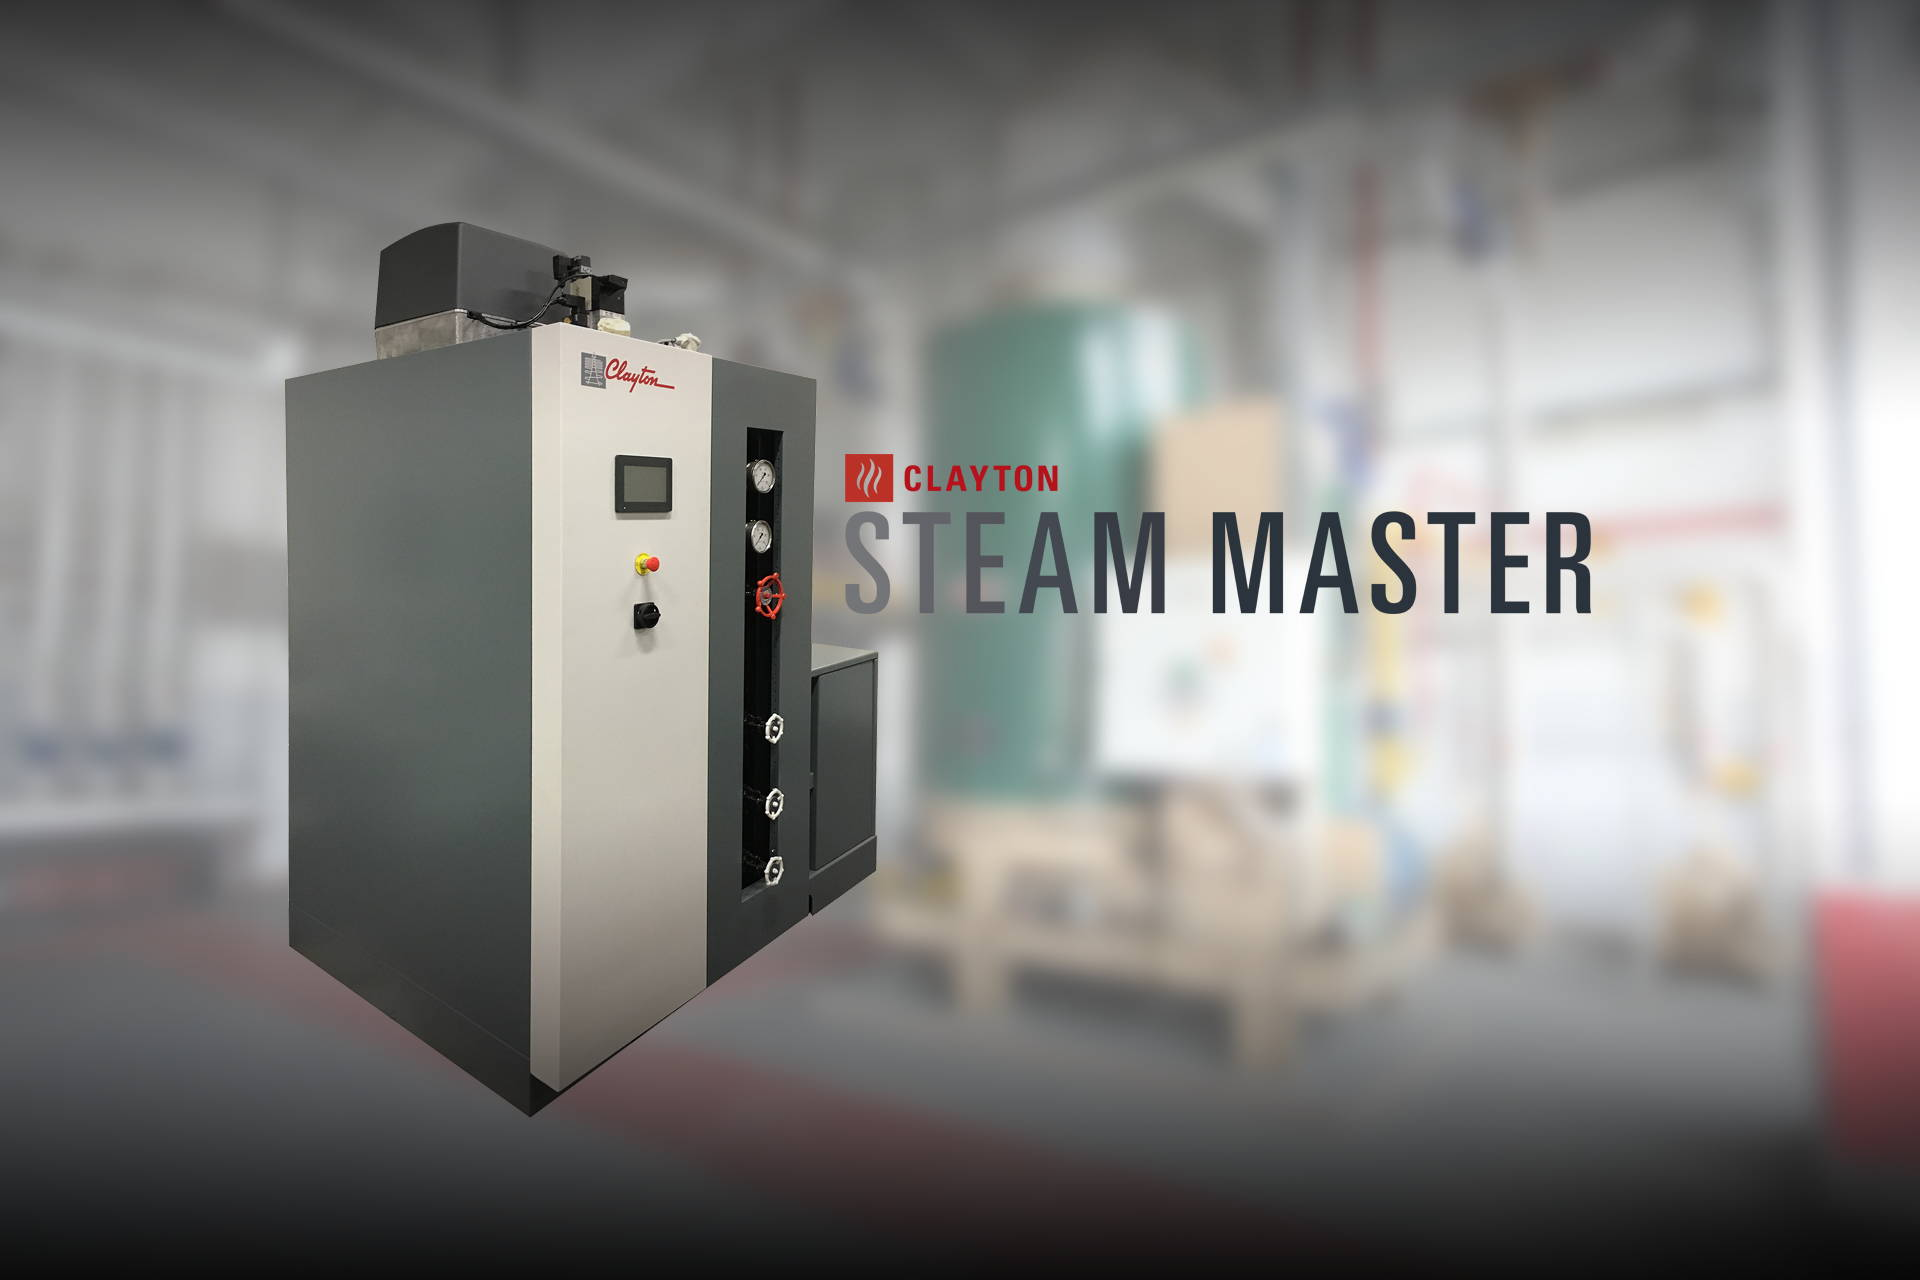 Clayton Industries<br /> World-wide leading manufacturer of equipment<br /> for industrial process steam generation